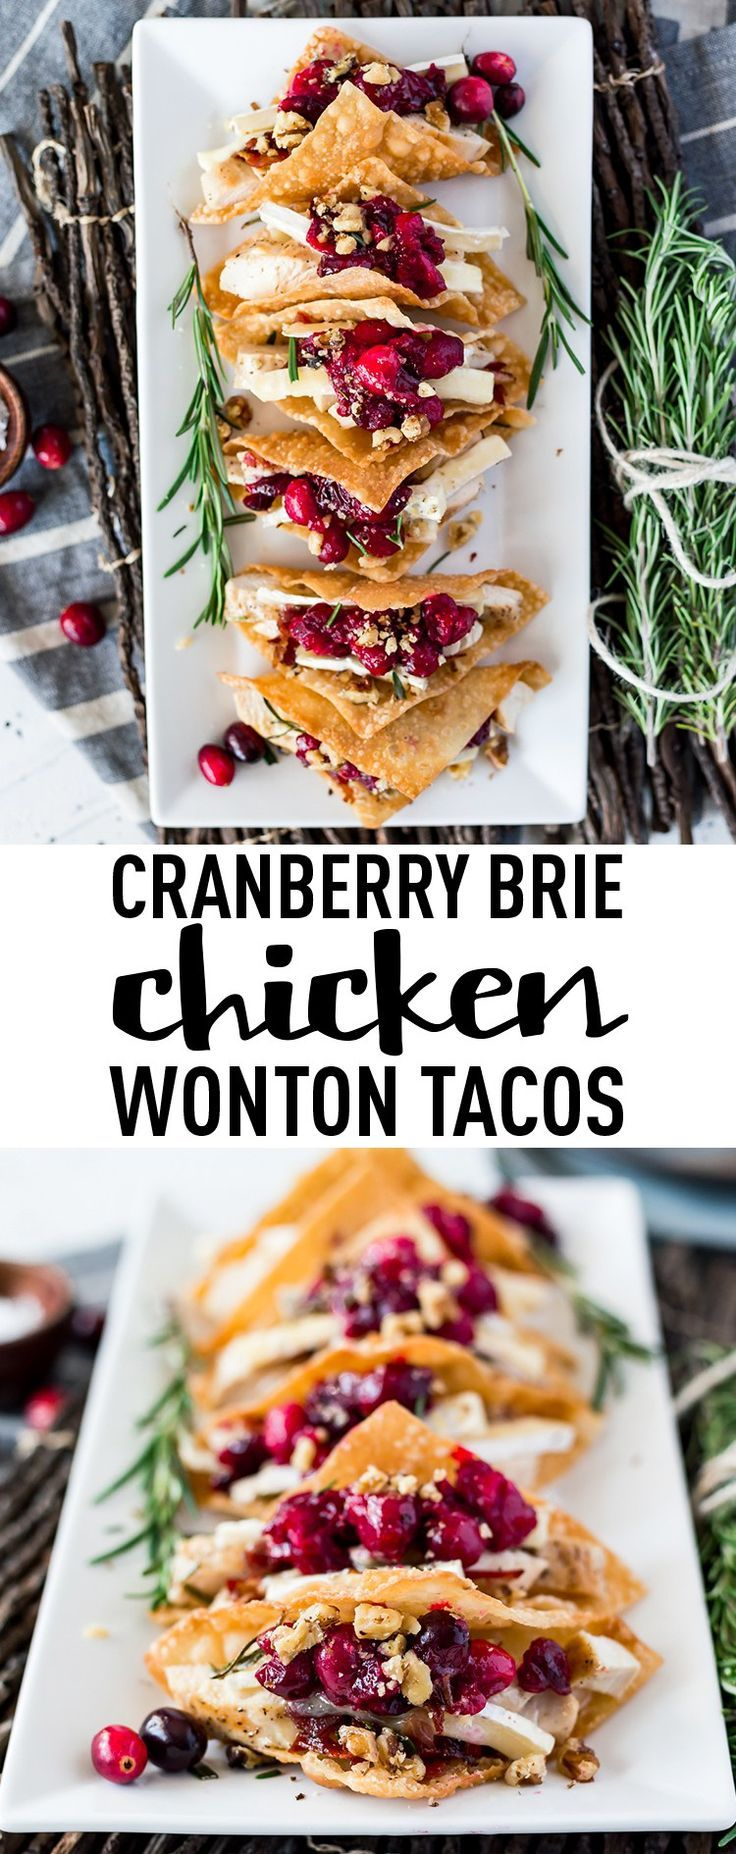 Cranberry Brie Chicken Wonton Tacos. I love appetizers. There's an amazing variety of appetizers to be had or created and seriously how much fun is it to nibble on different appies. These Cranberry Brie Chicken Wonton Tacos are no exception. I'm addicted to them, give me a table full of appetizers like these and I'm set, that's my kind of meal. #chicken #recipe #wontontacos #chickenwontontacos #appetizer #holidayappetizers #holidayrecipes #chickenrecipes